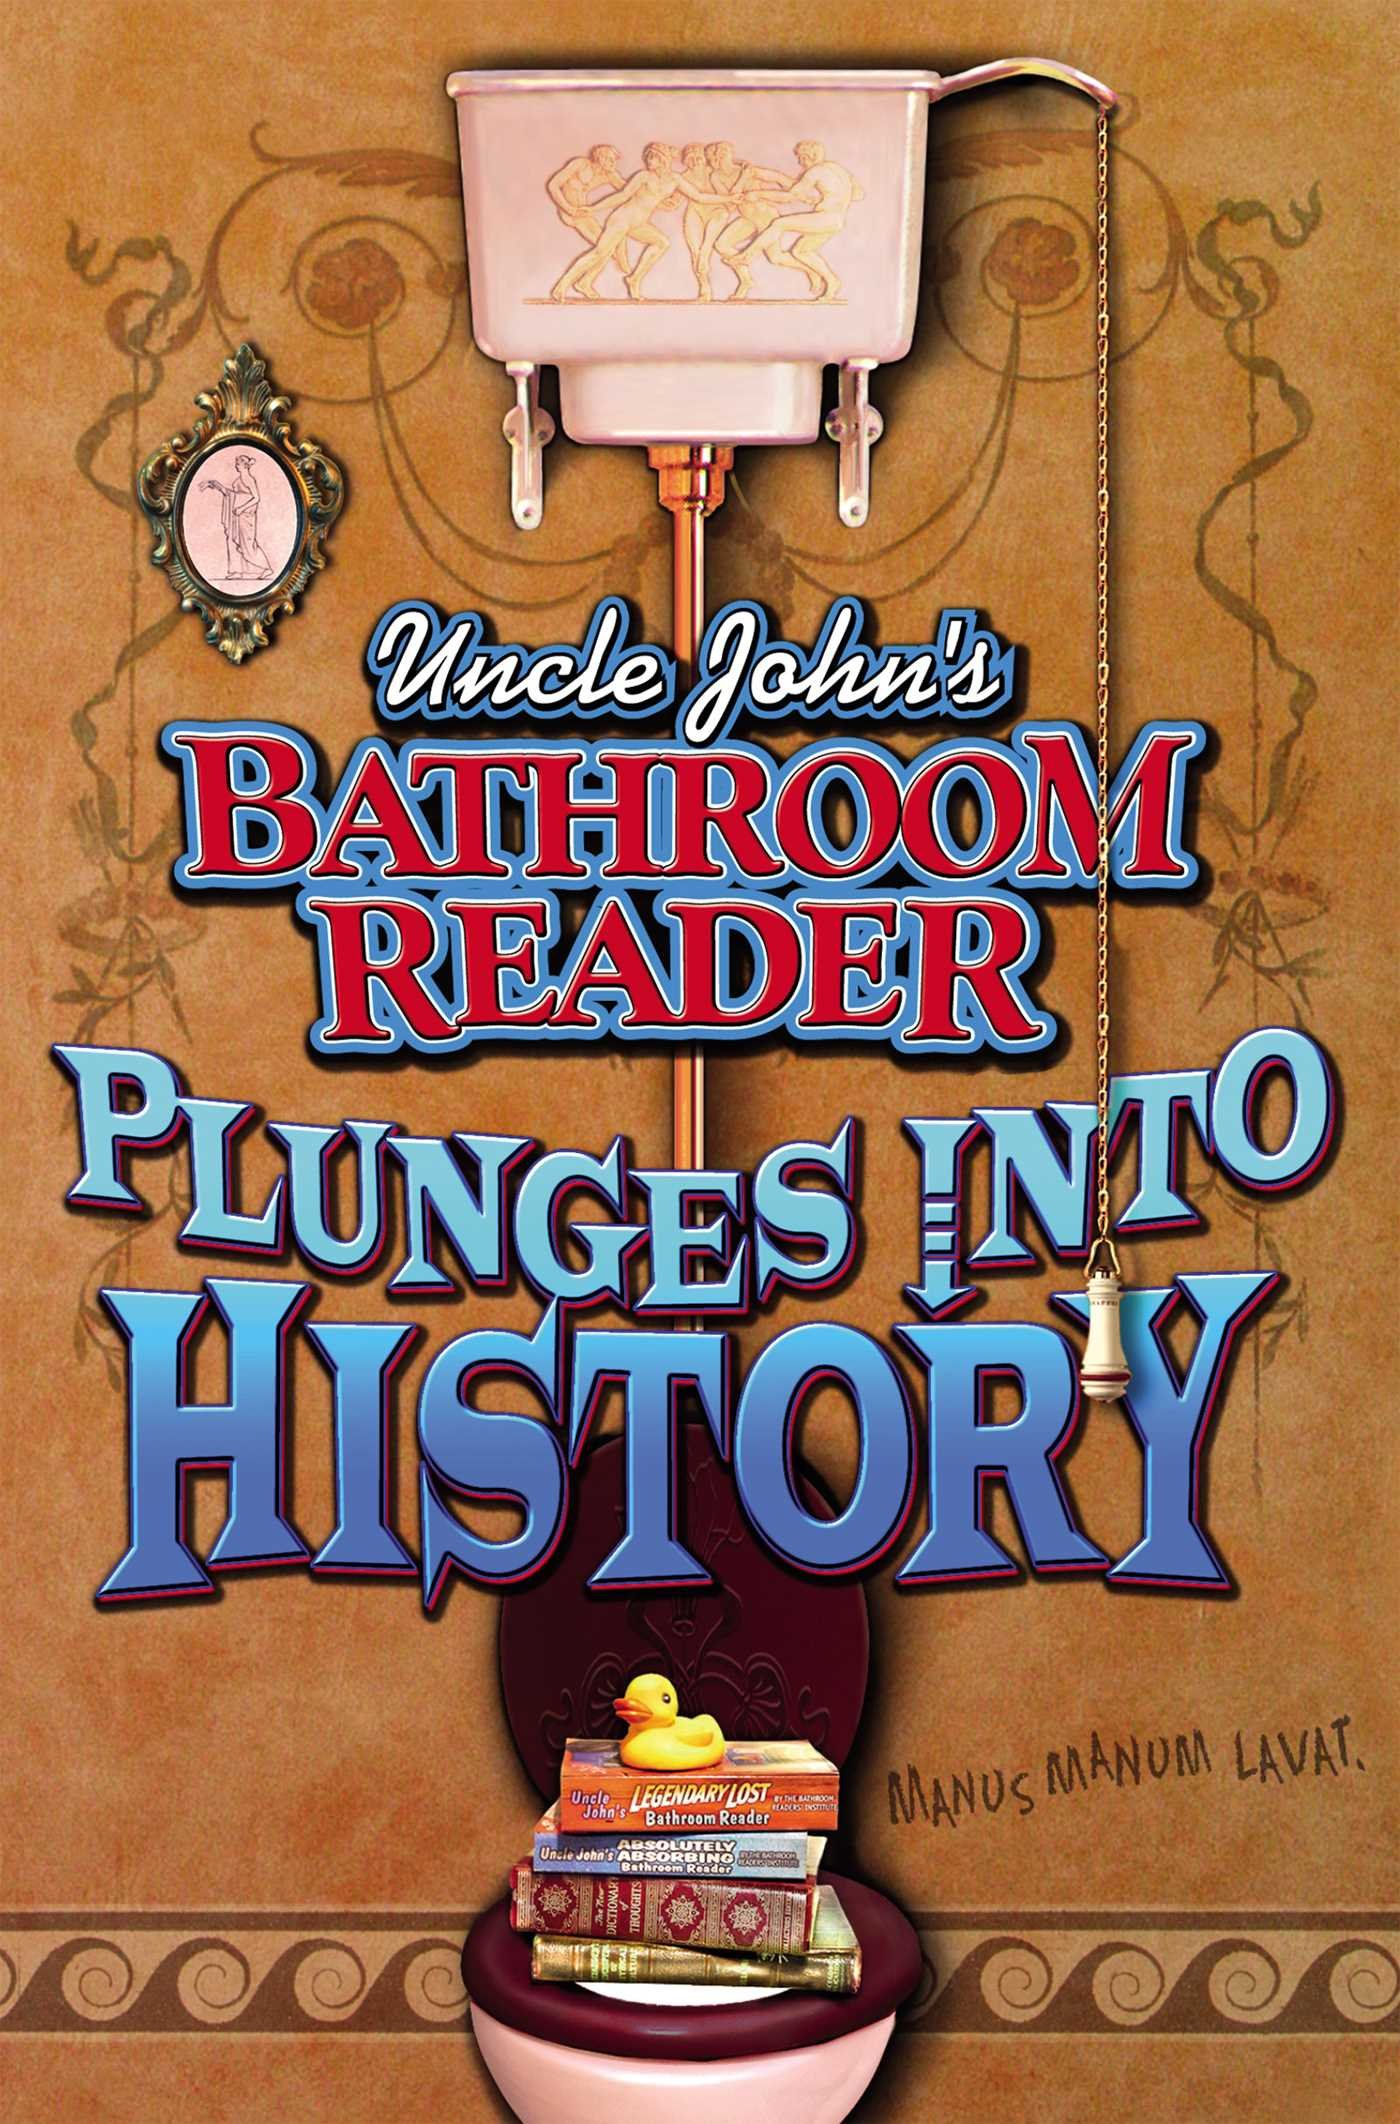 Uncle John S Bathroom Reader Plunges Into History The Bathroom Readers Hysterical Society 9781571456977 Amazon Com Books